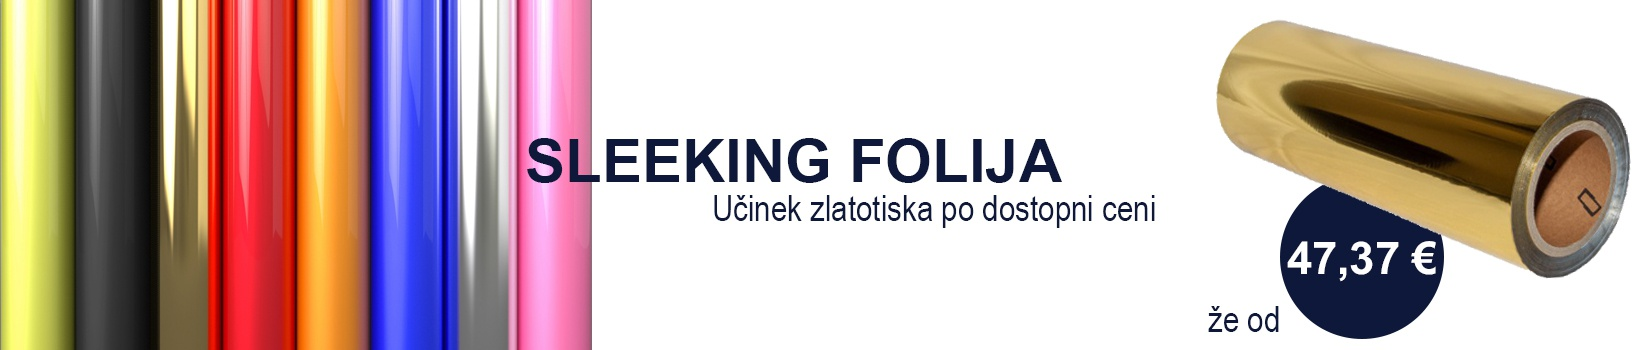 Animacija Sleeking folija